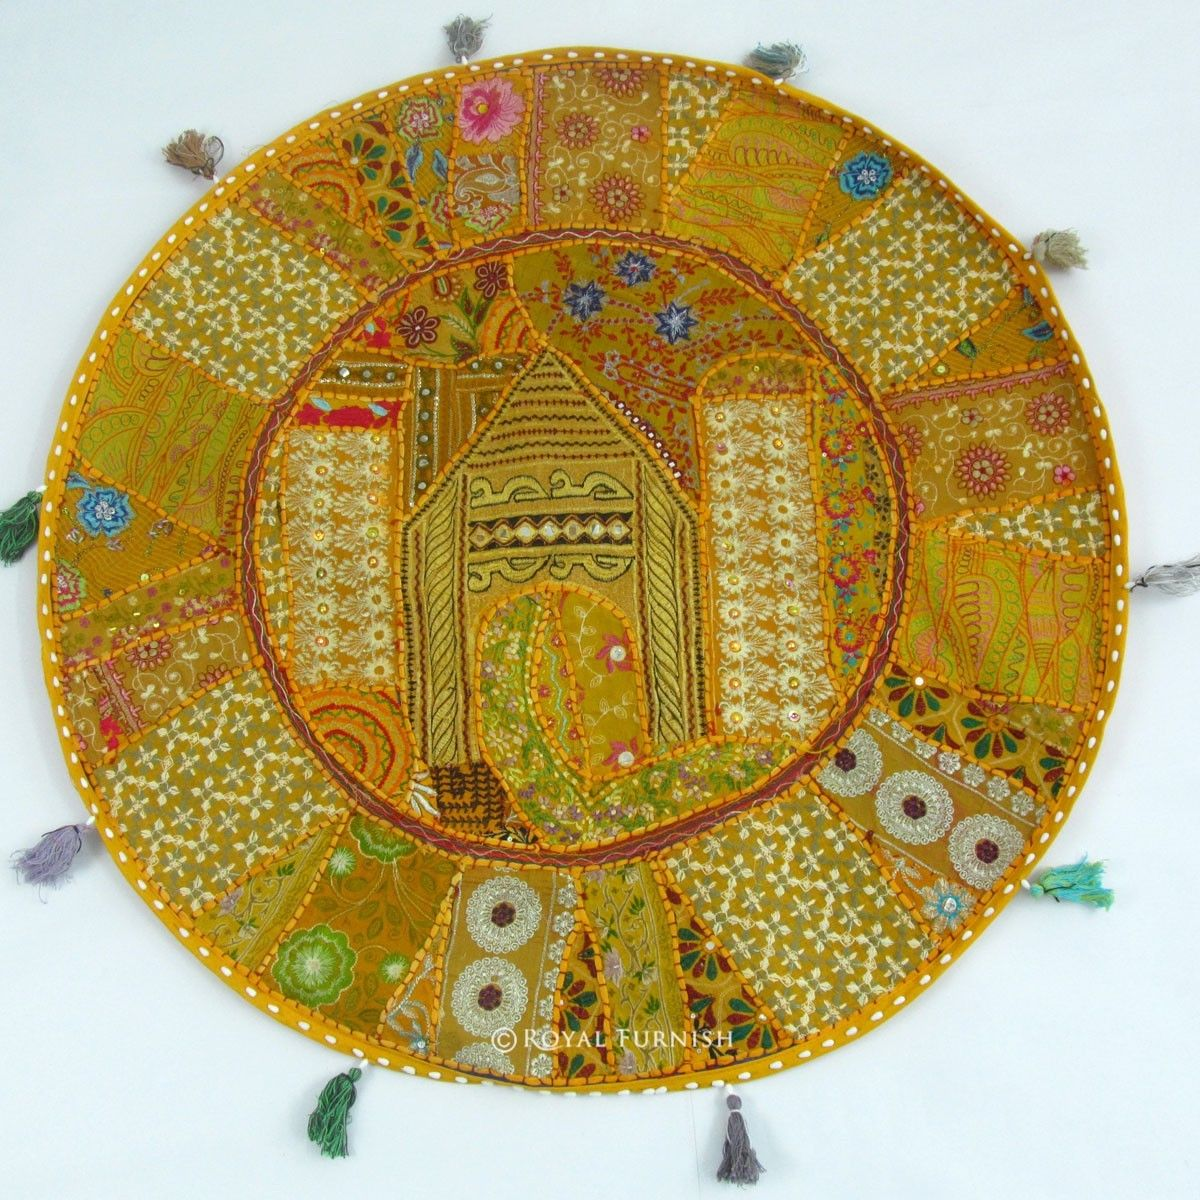 Big Large Indian Handmade Patchwork Floor Seating Pillow Cushion Case